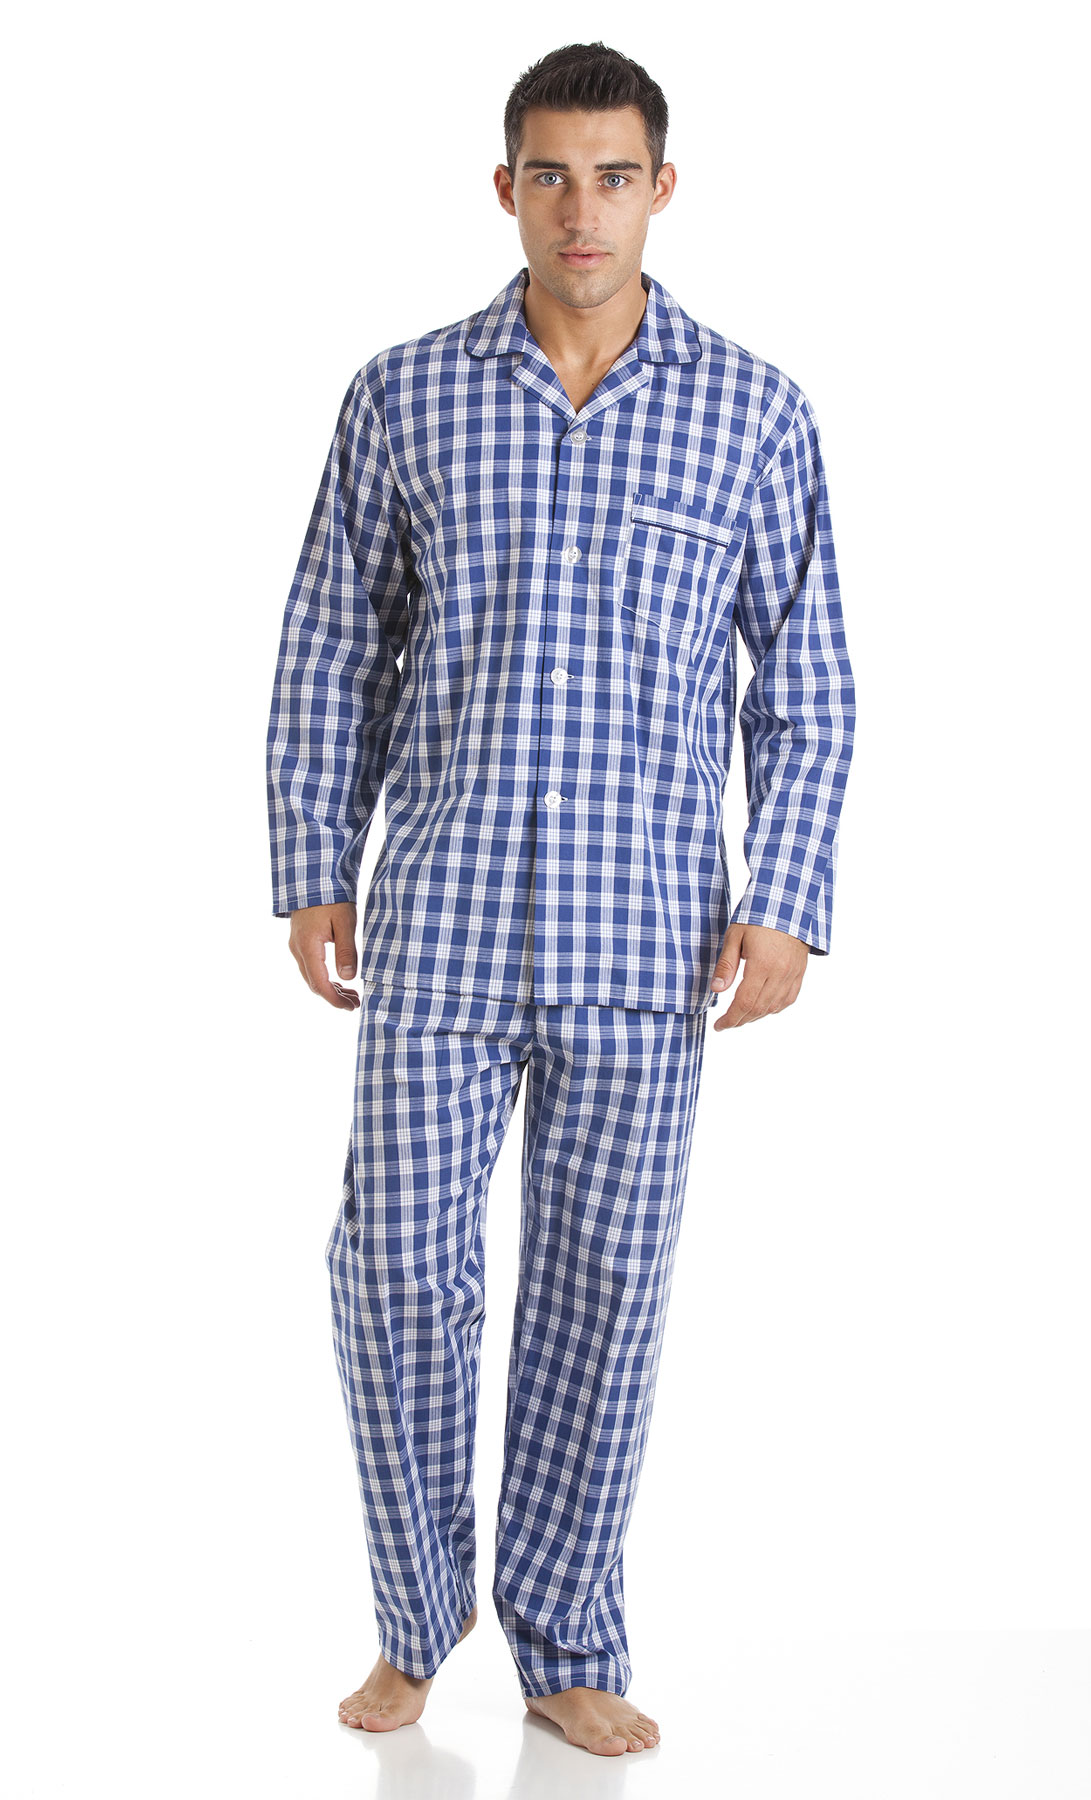 Mens Haigman Printed 100 Cotton Long Pyjama Nightwear Lounge Wear 2x ... 9c303b4e7